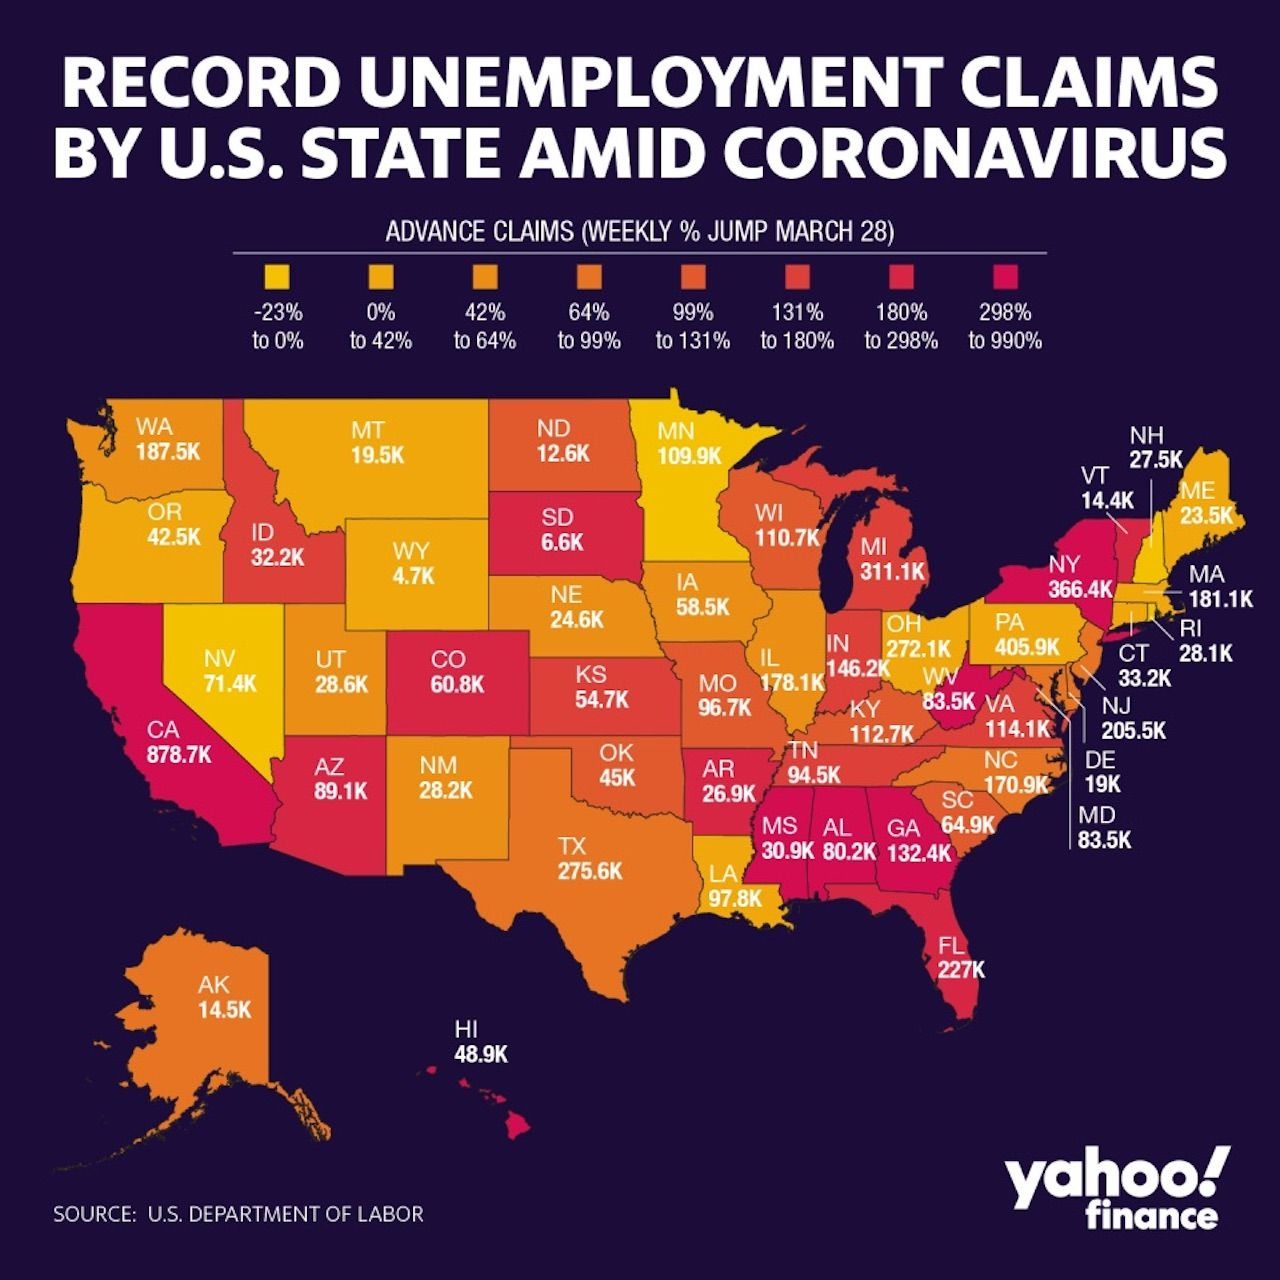 Unemployment rate map